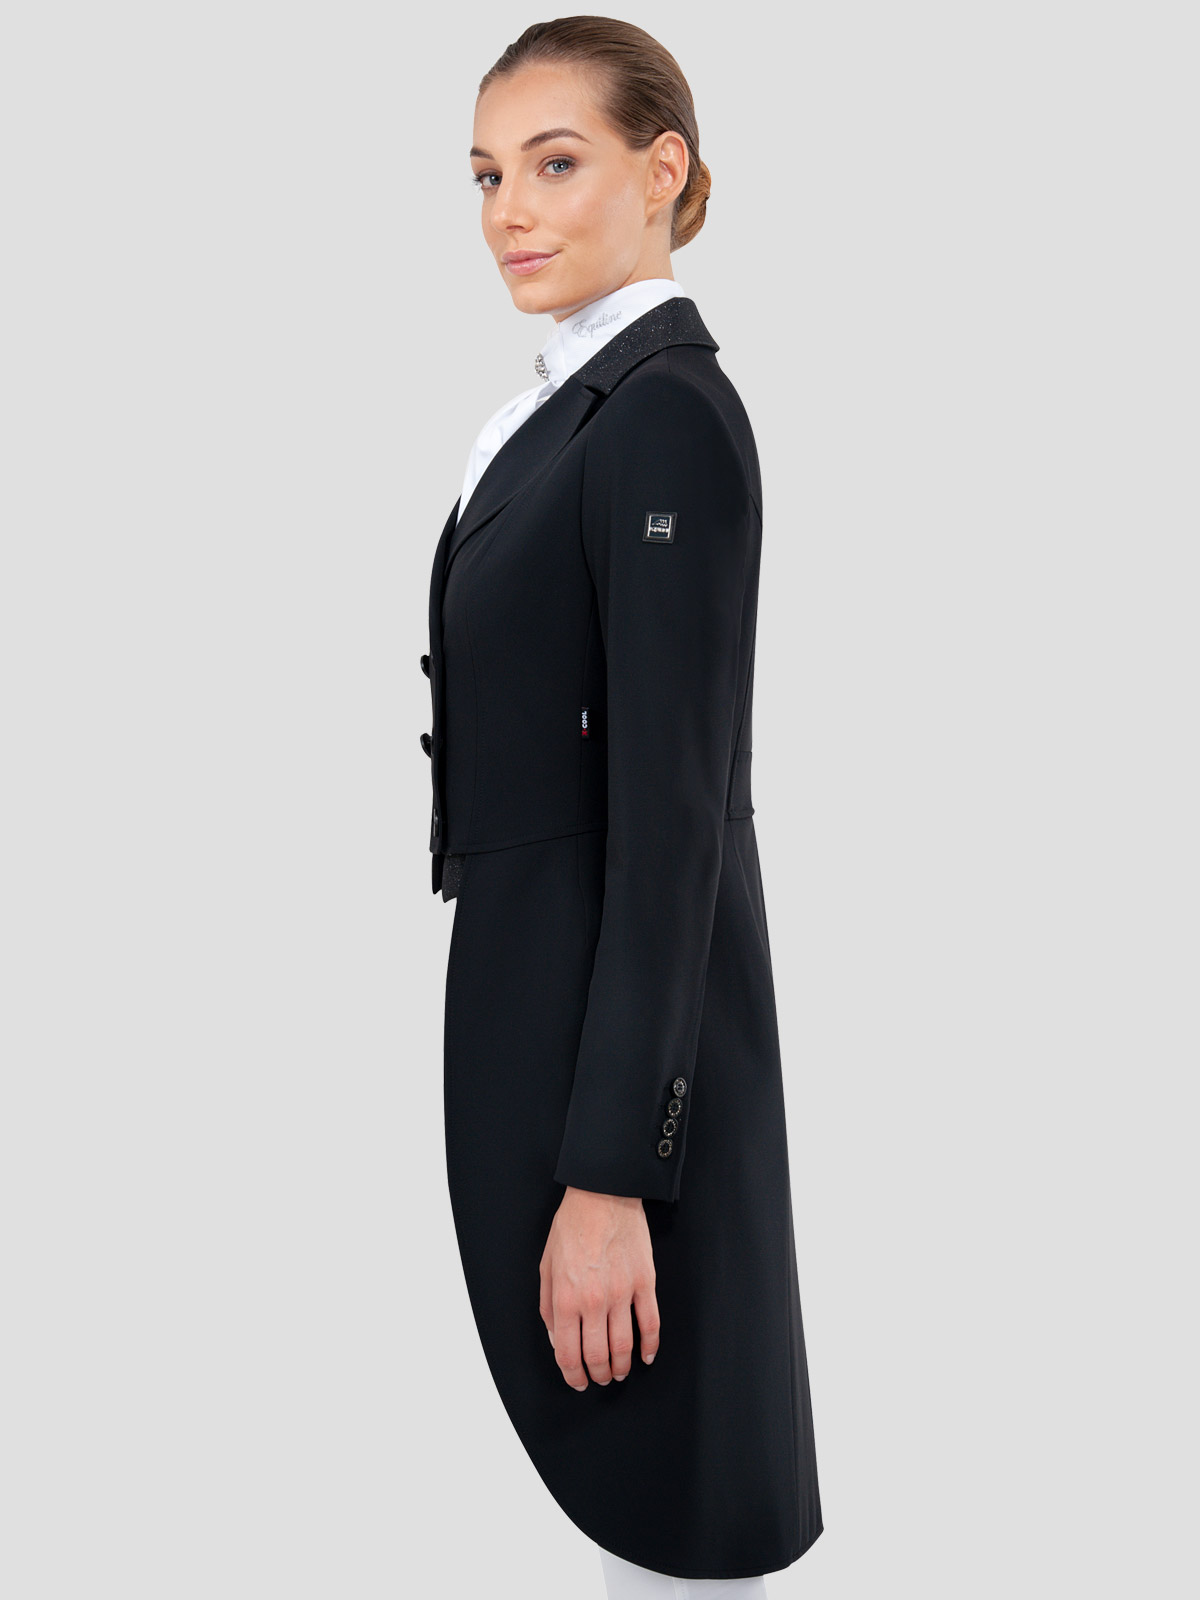 GALILEE TAILCOAT WITH GLITTER 2